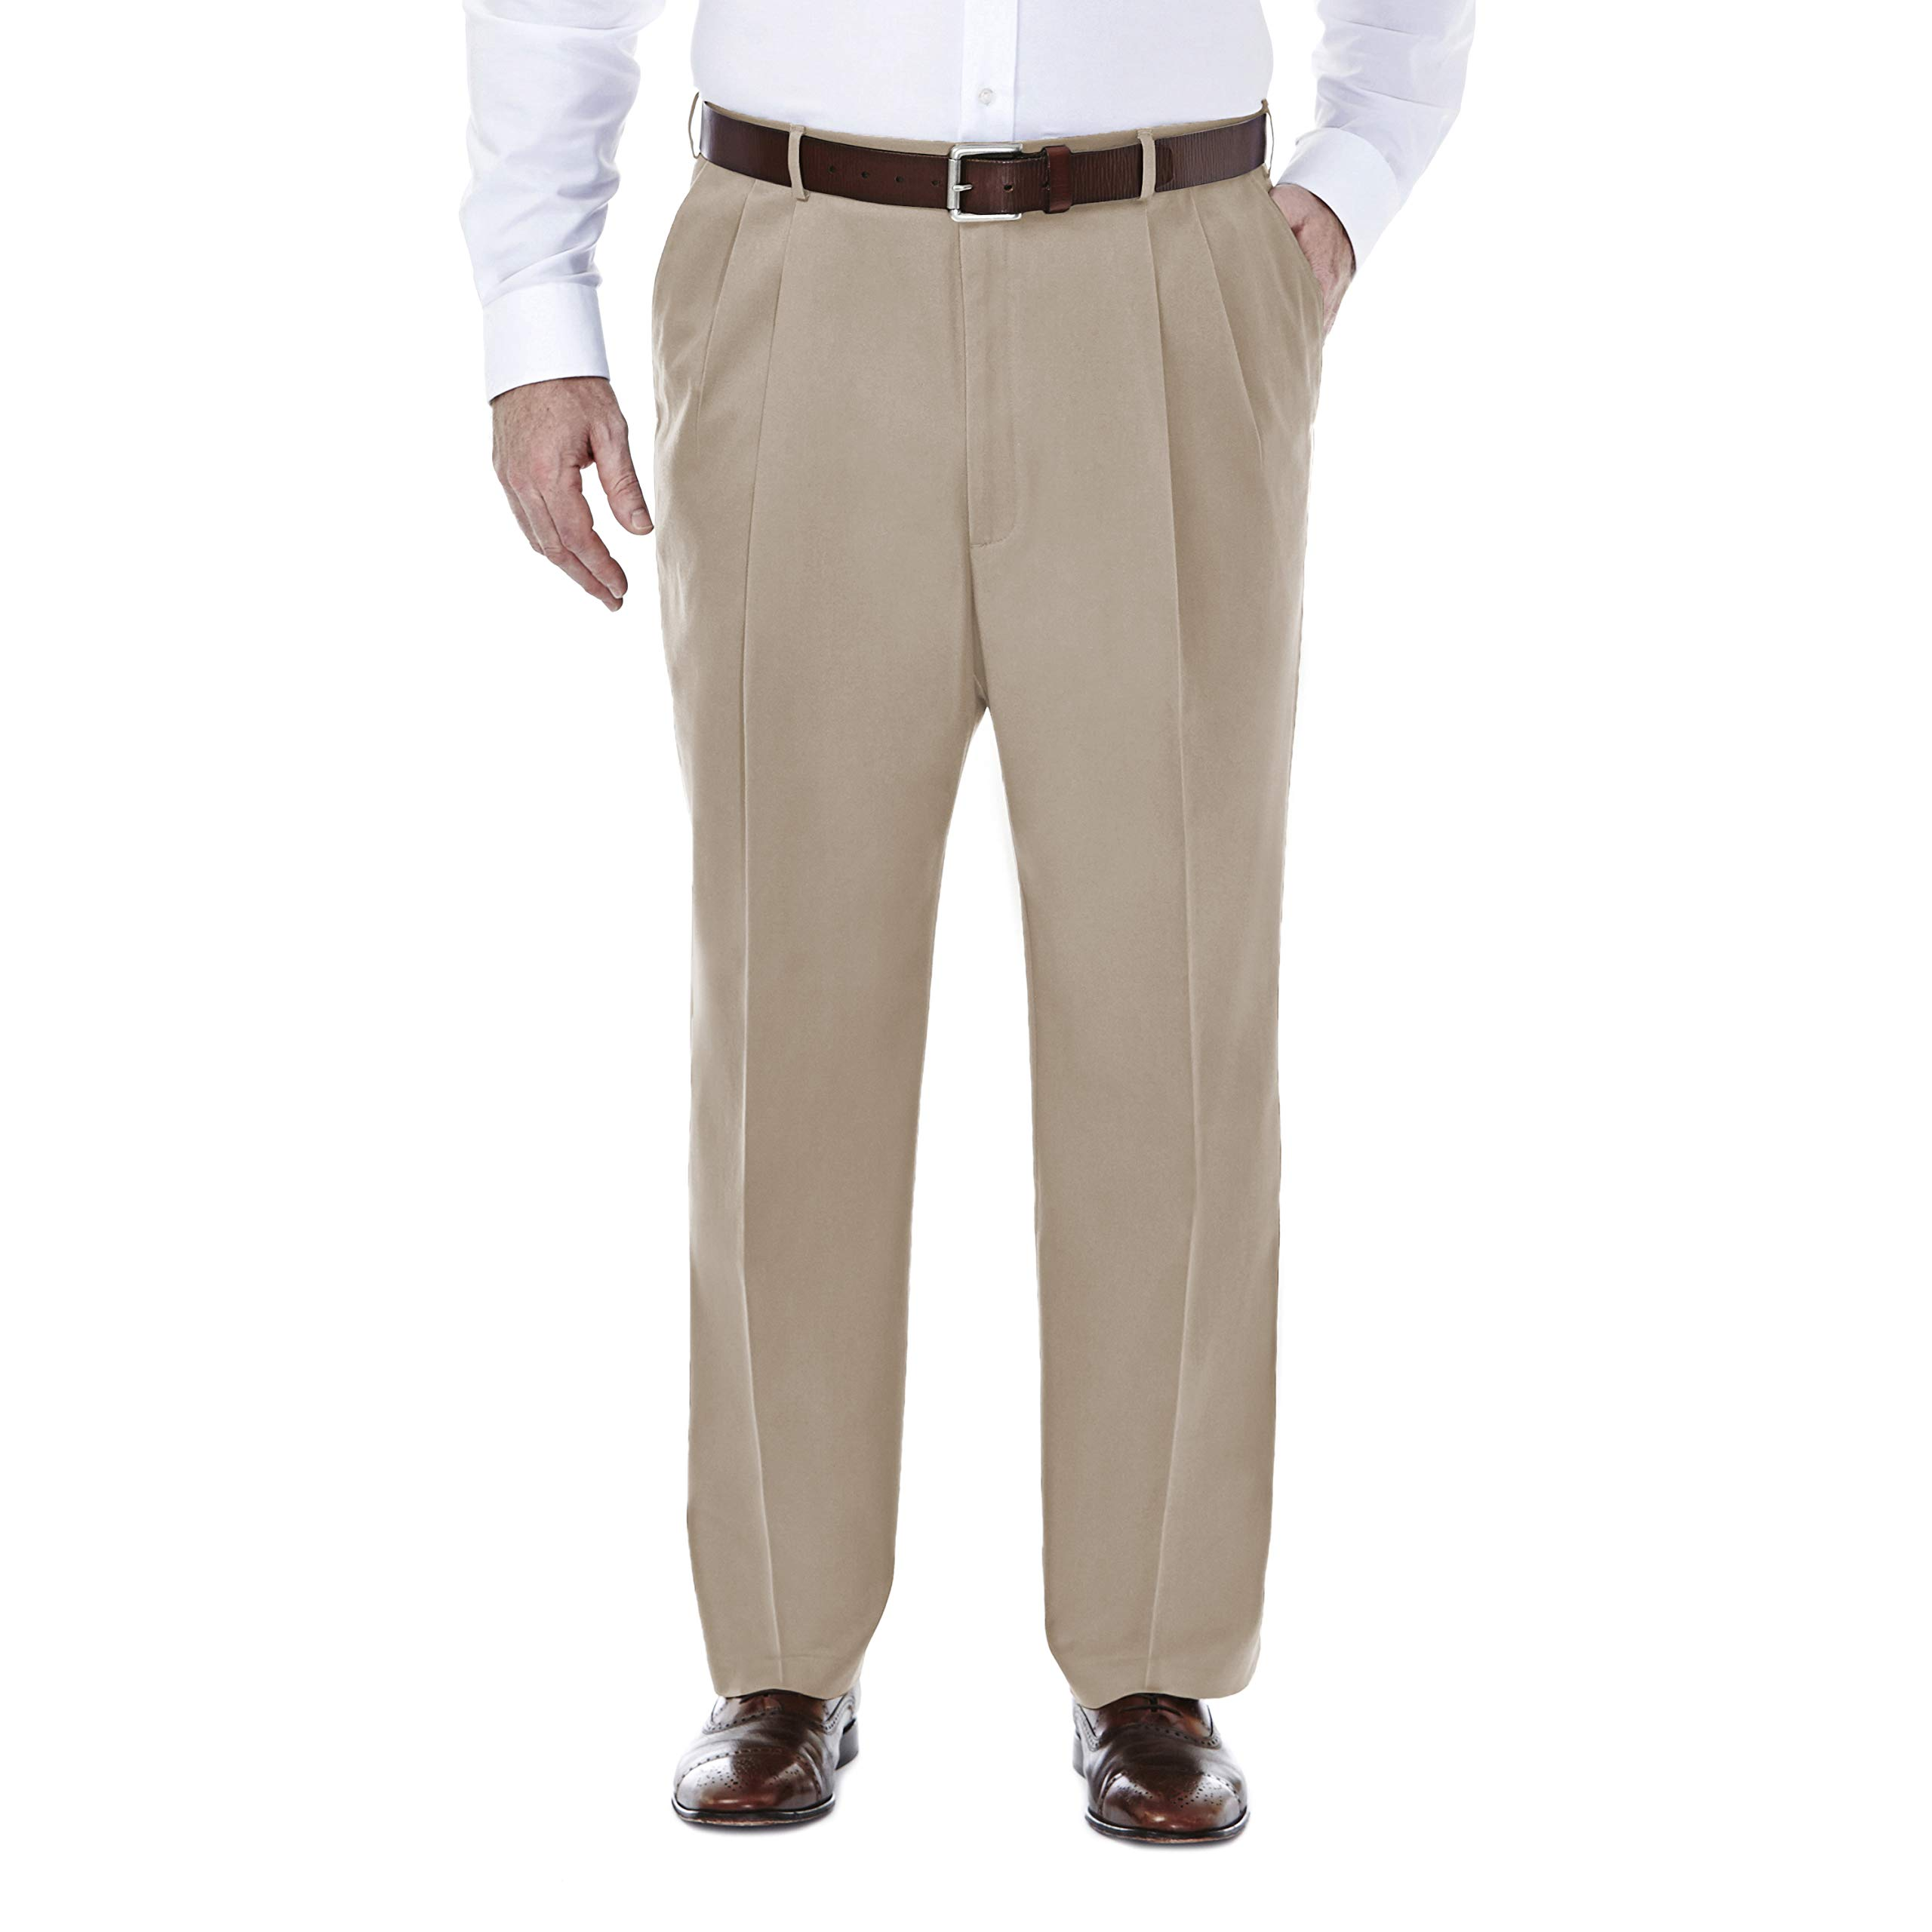 Haggar Men's Big and Tall Premium No Iron Heather Classic Fit Expandable Waist Plain Front Pant, Sand, 60Wx30L